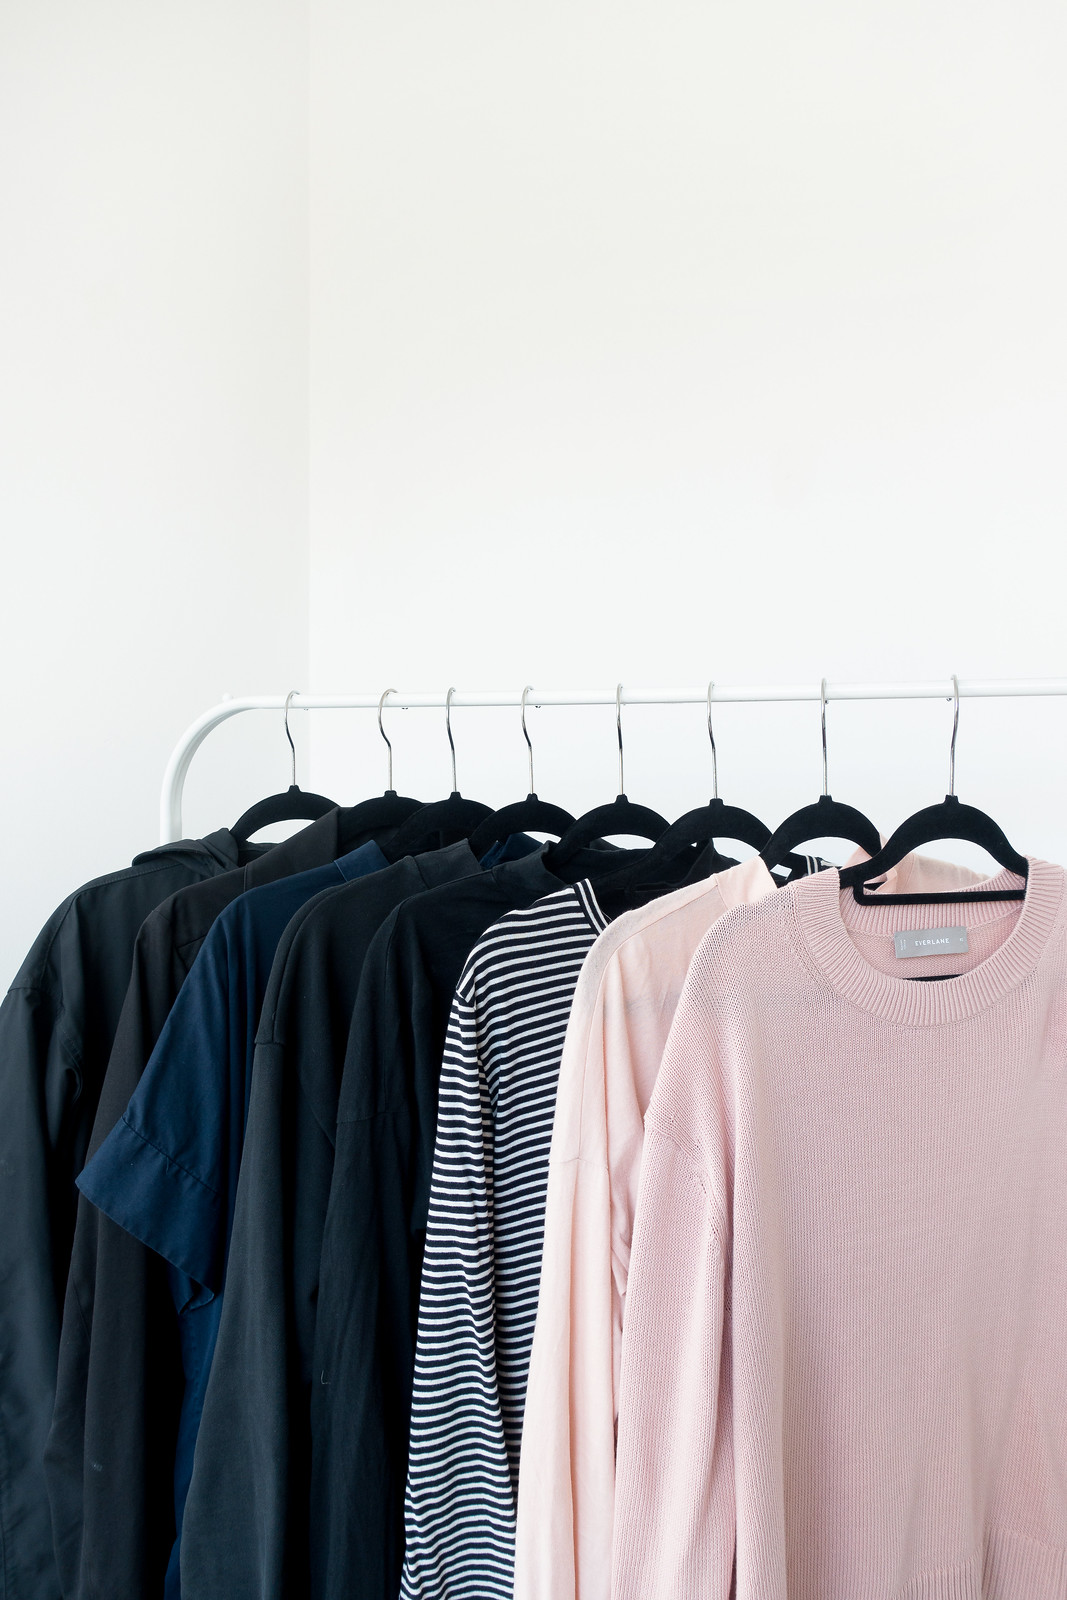 Radically Transparent Fashion With Everlane